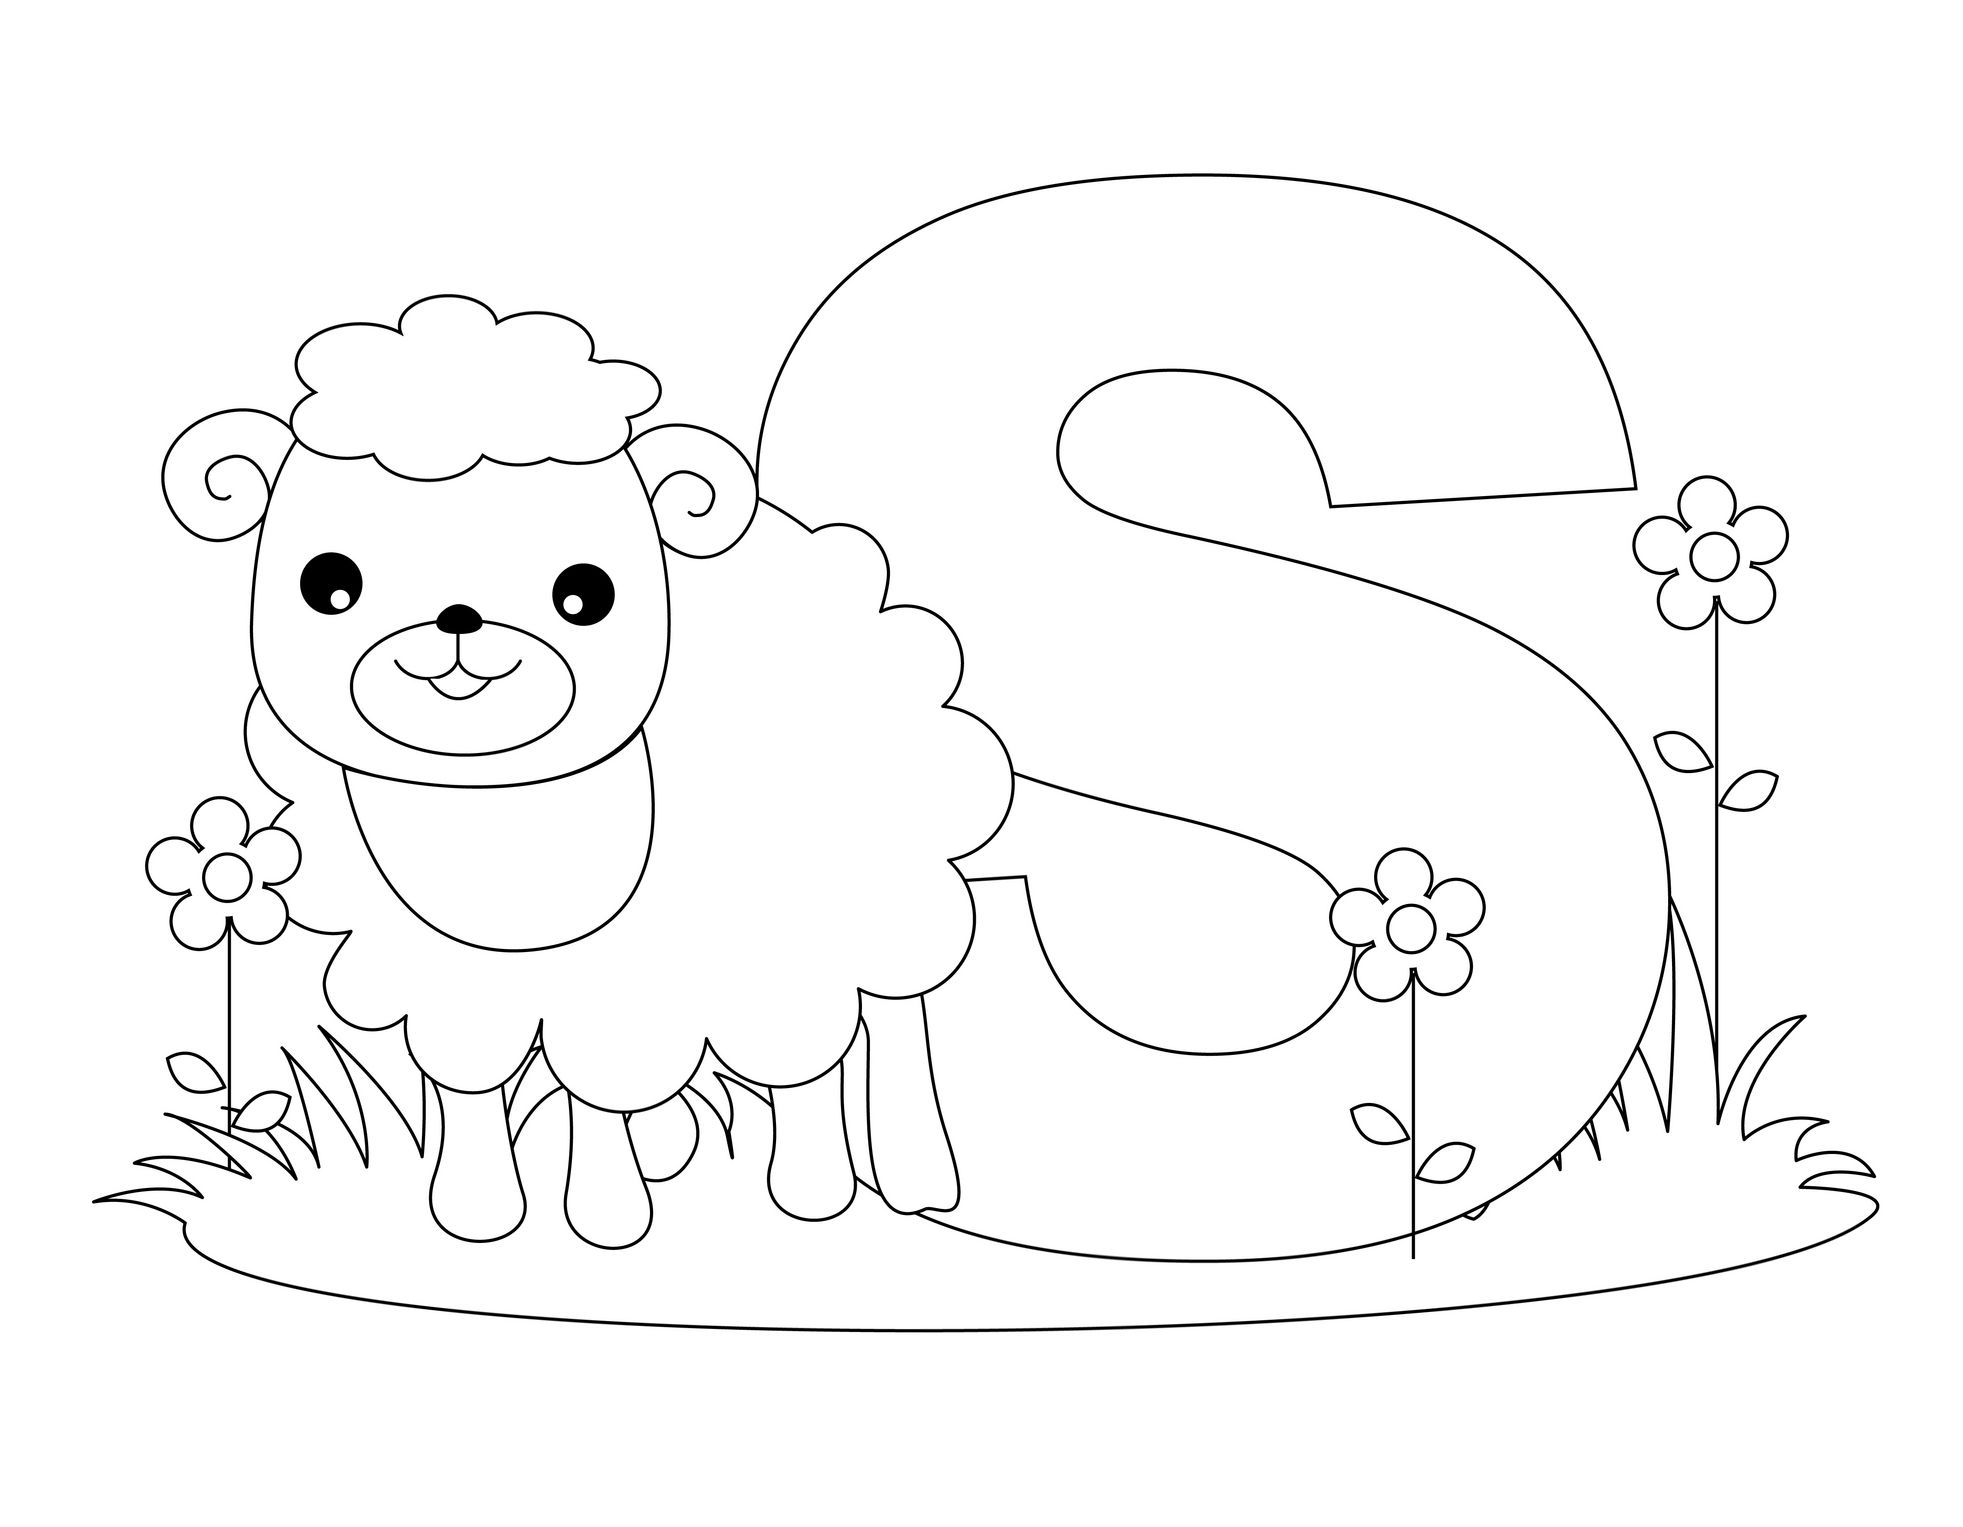 Animal Alphabet Letter S Is For Sheep!